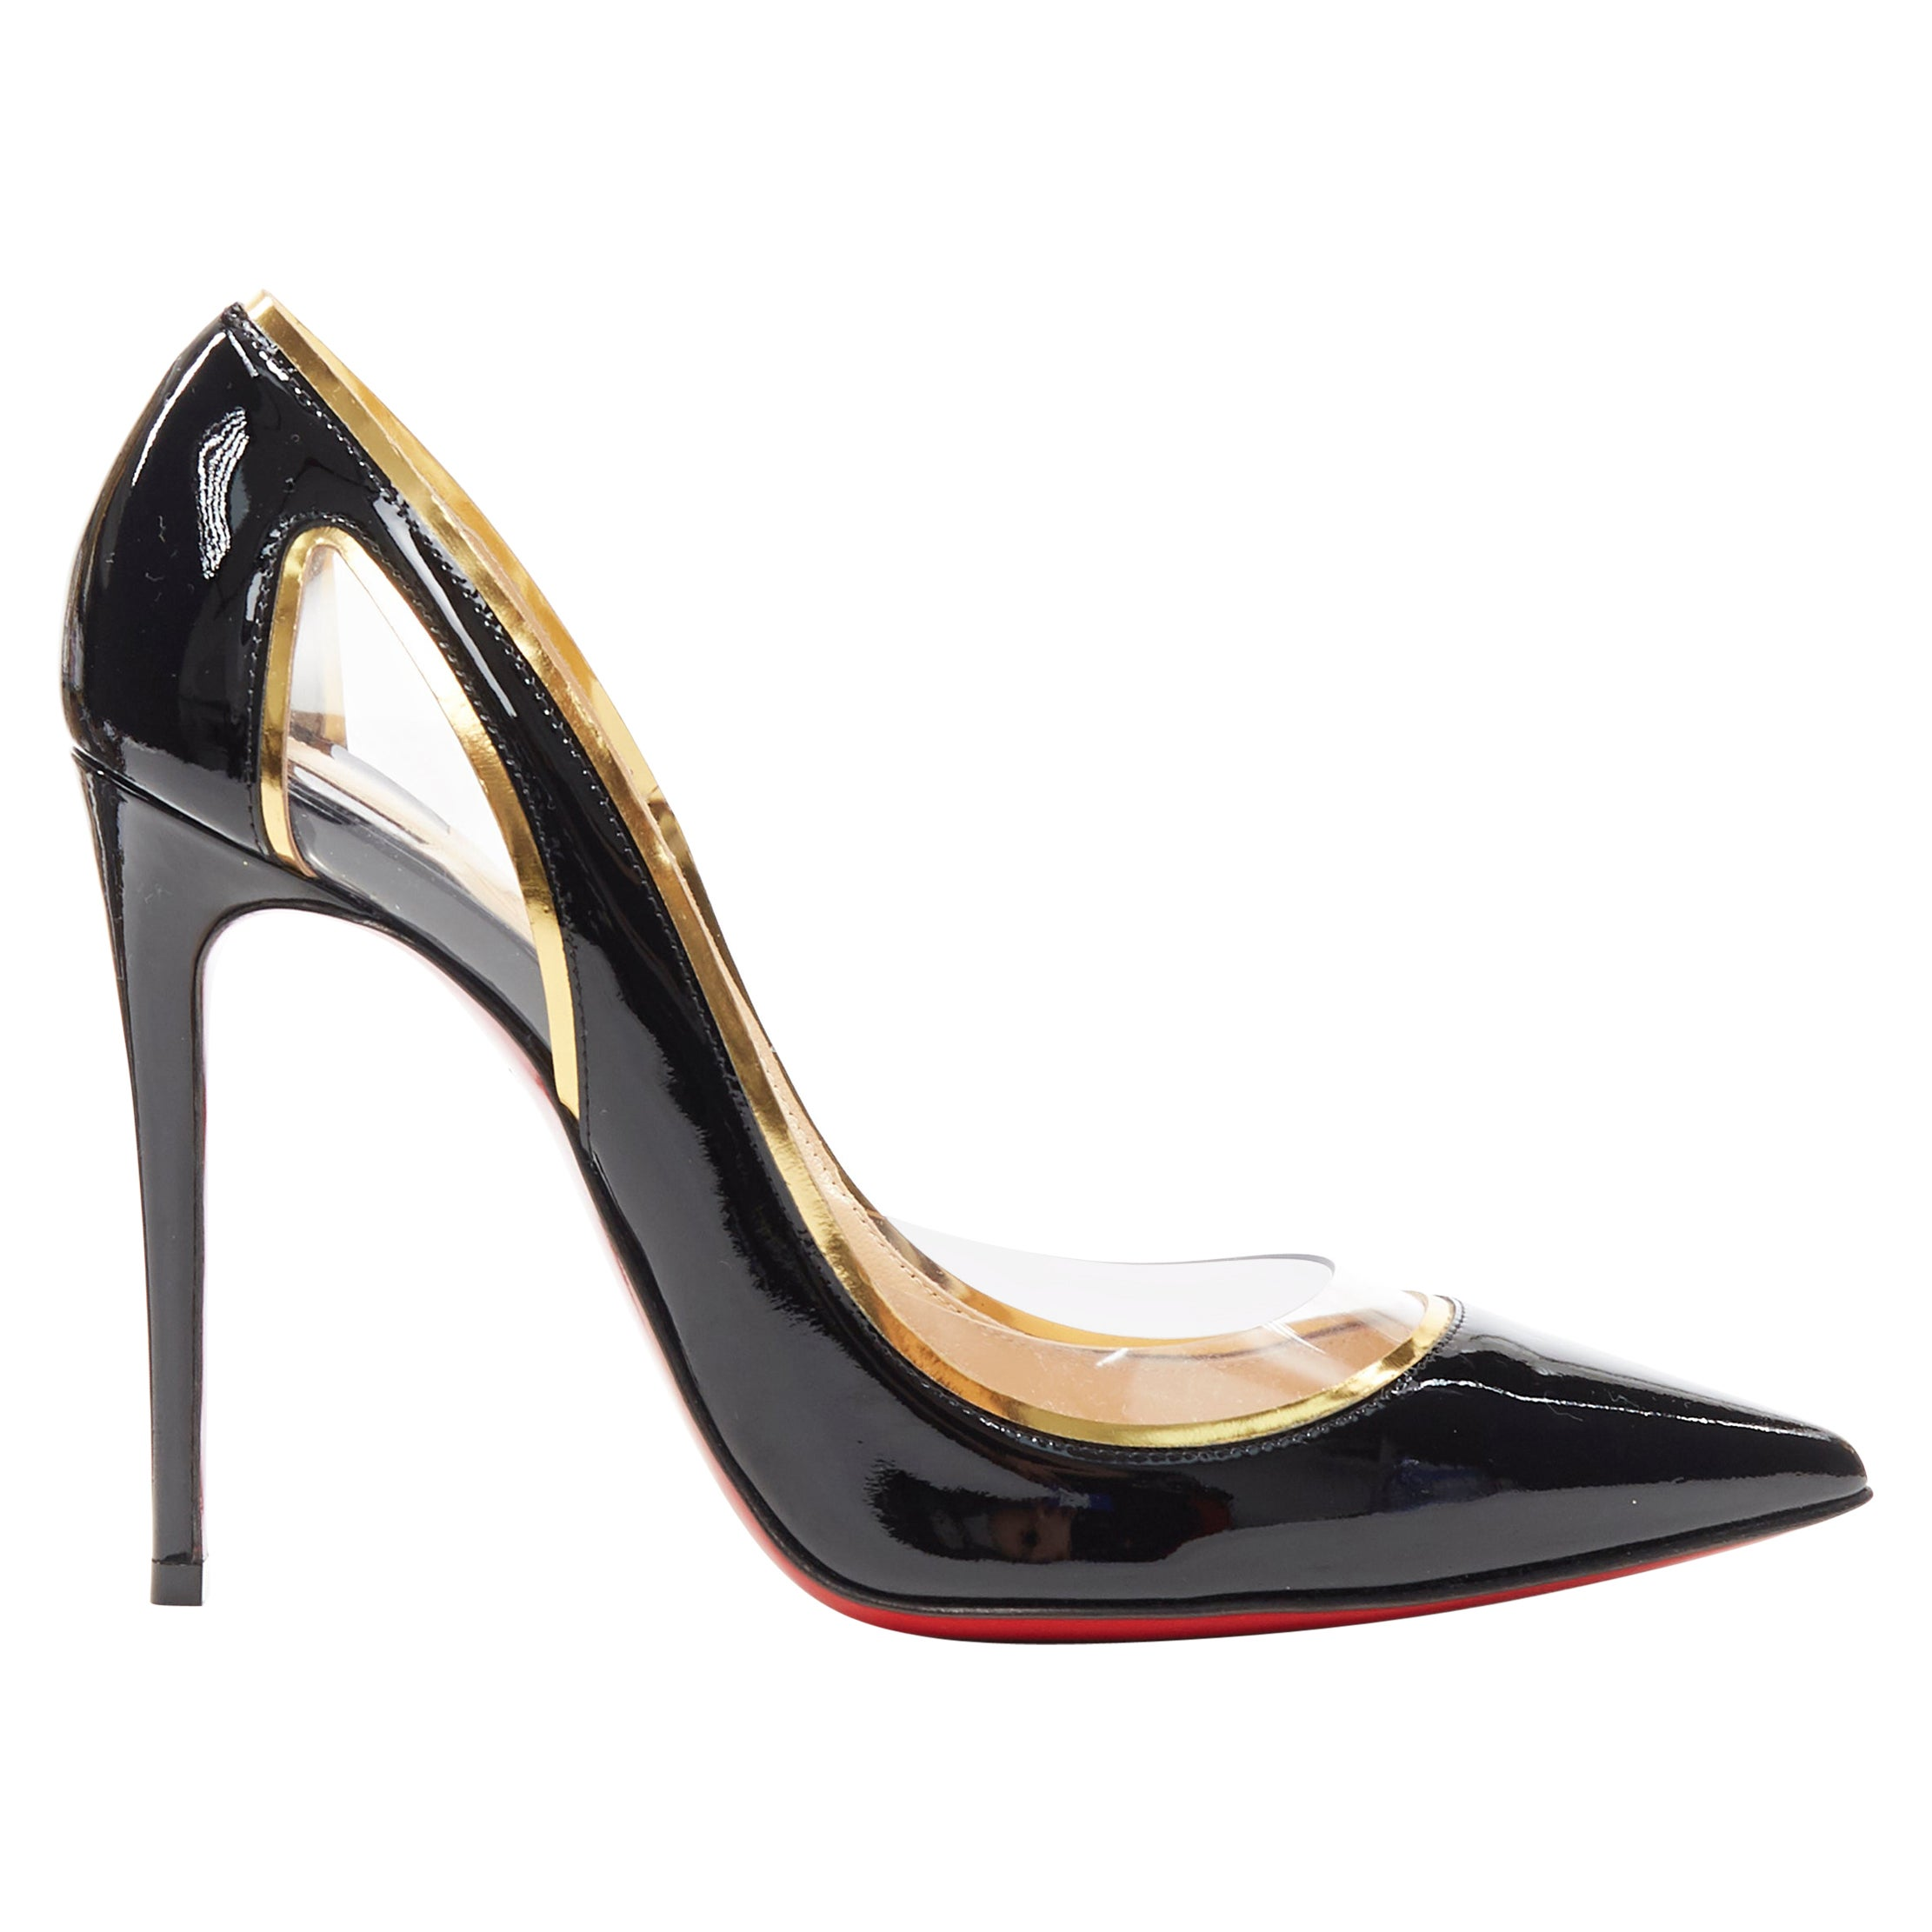 new CHRISTIAN LOUBOUTIN Cosmo 554 black patent PVC trimmed pigalle pump EU36.5